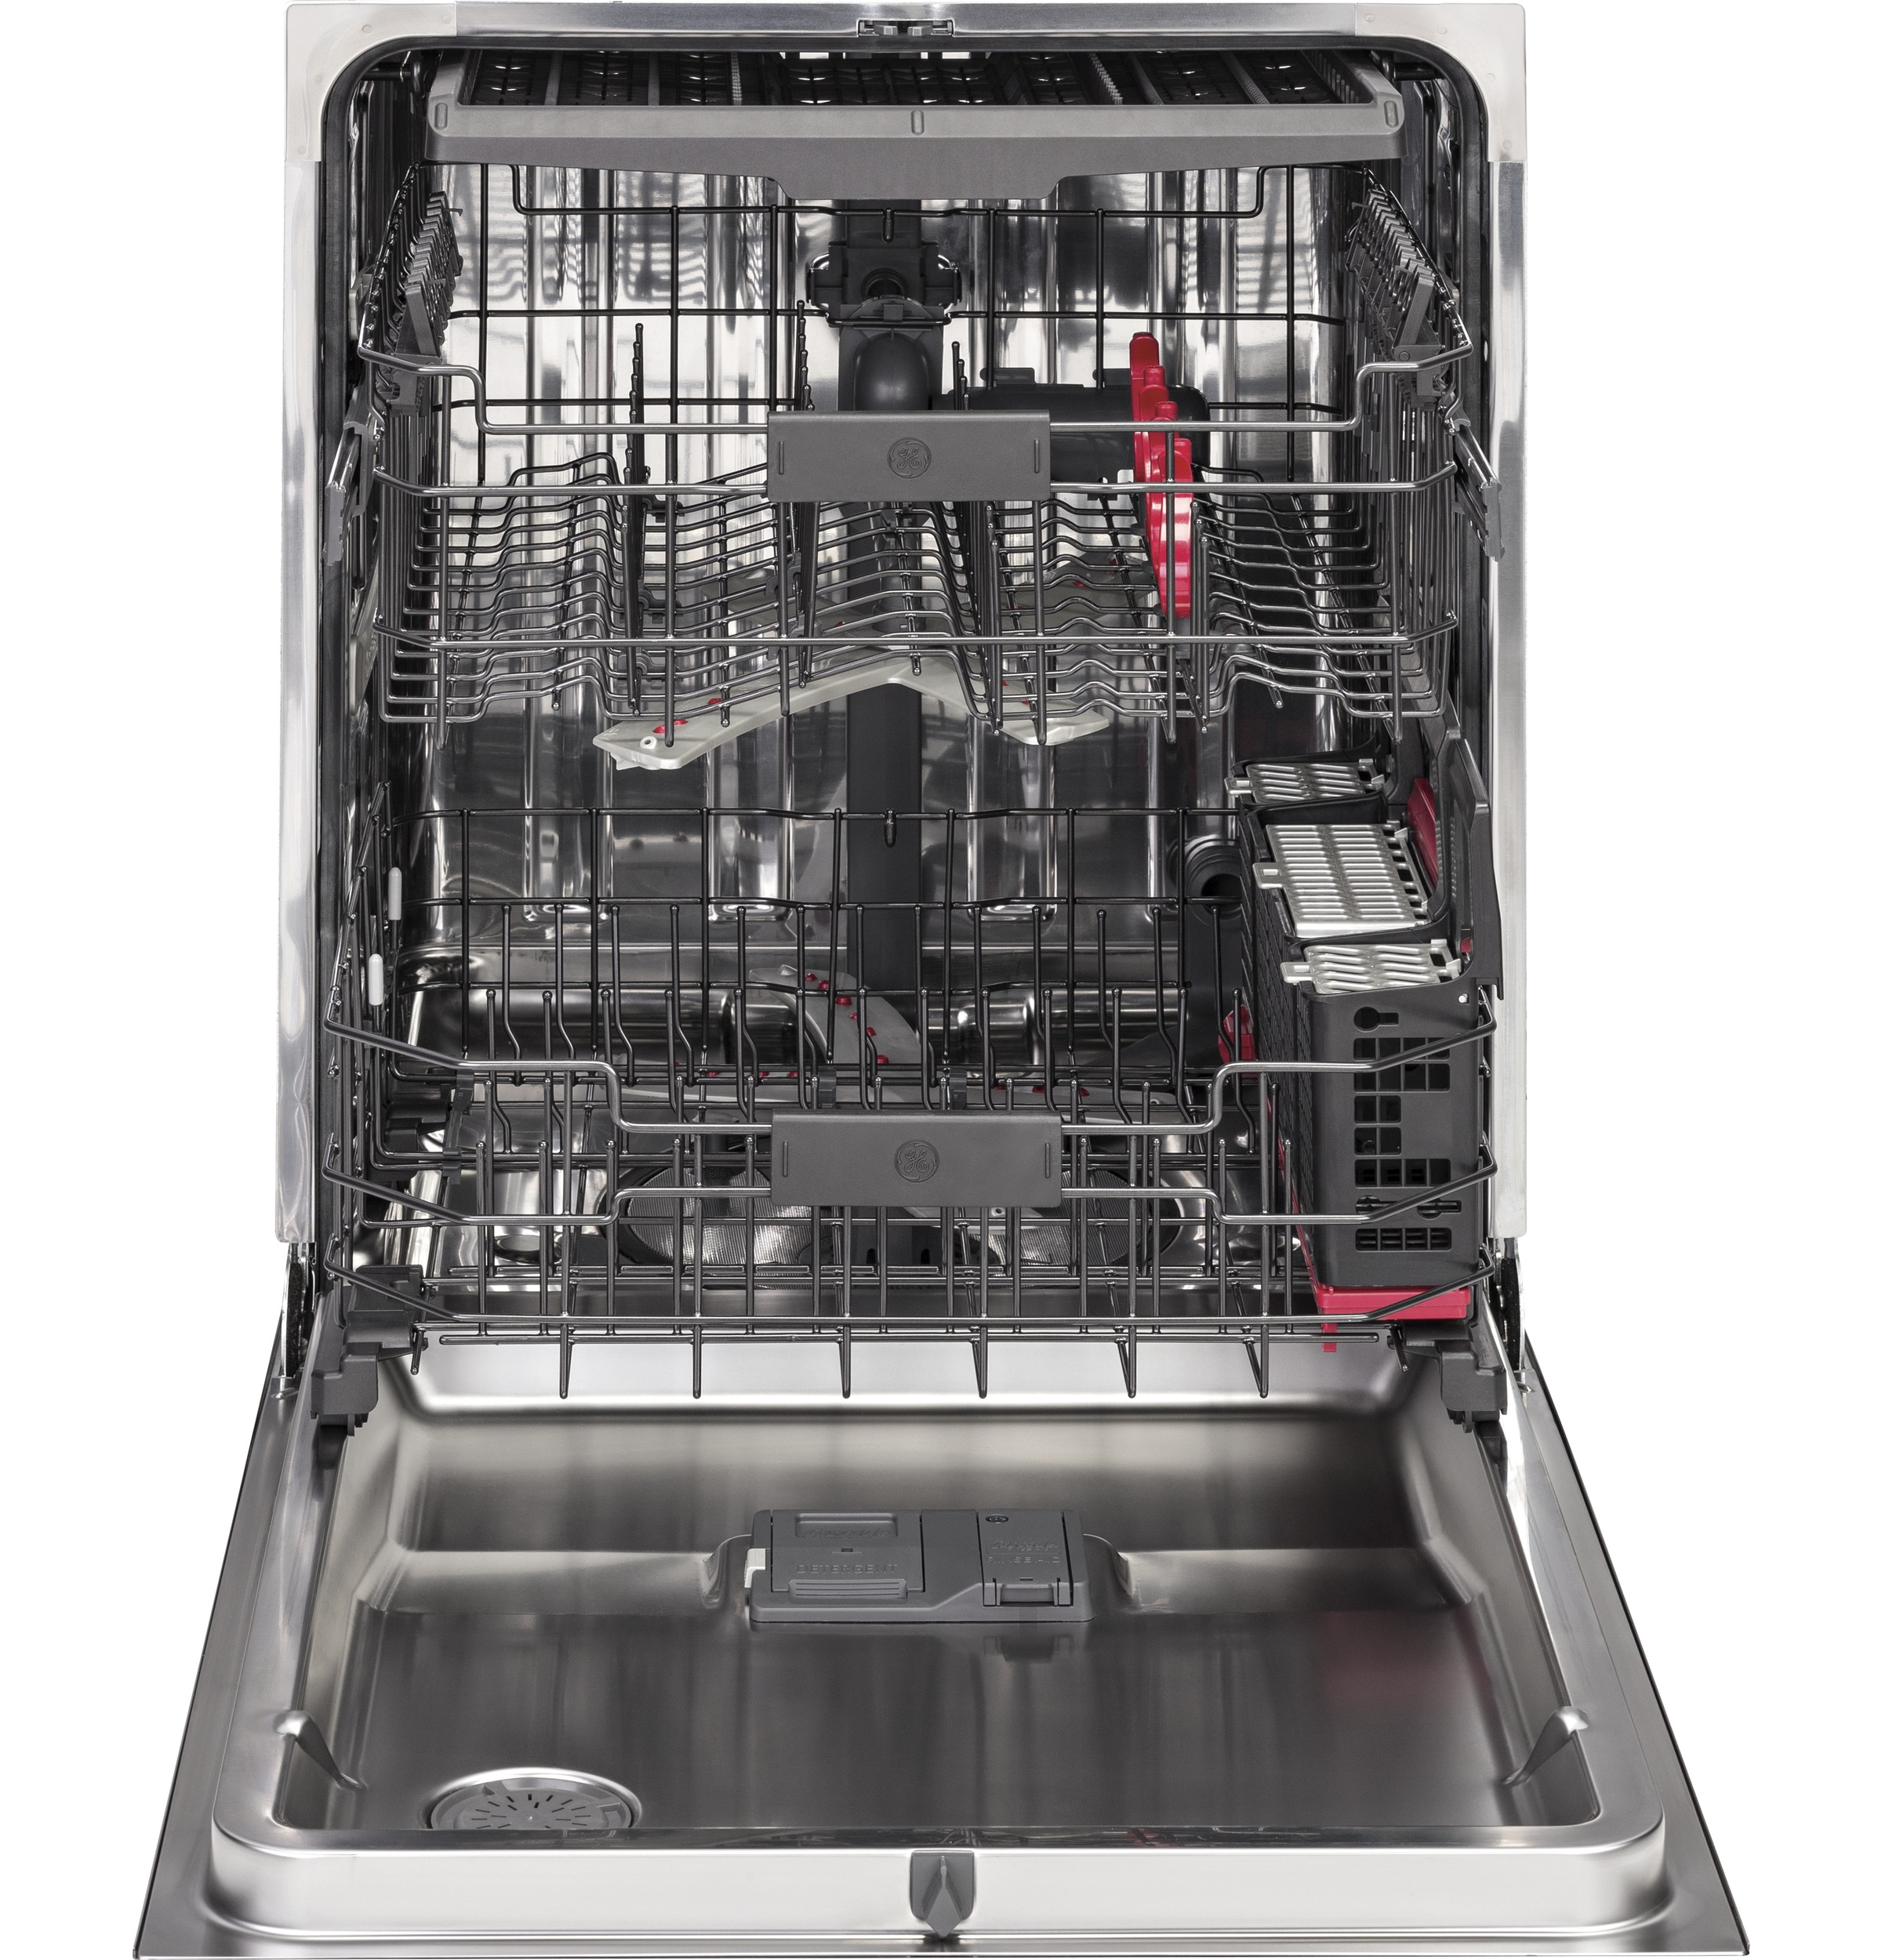 Model: PDT855SMJES | GE Profile™ Stainless Steel Interior Dishwasher with Hidden Controls